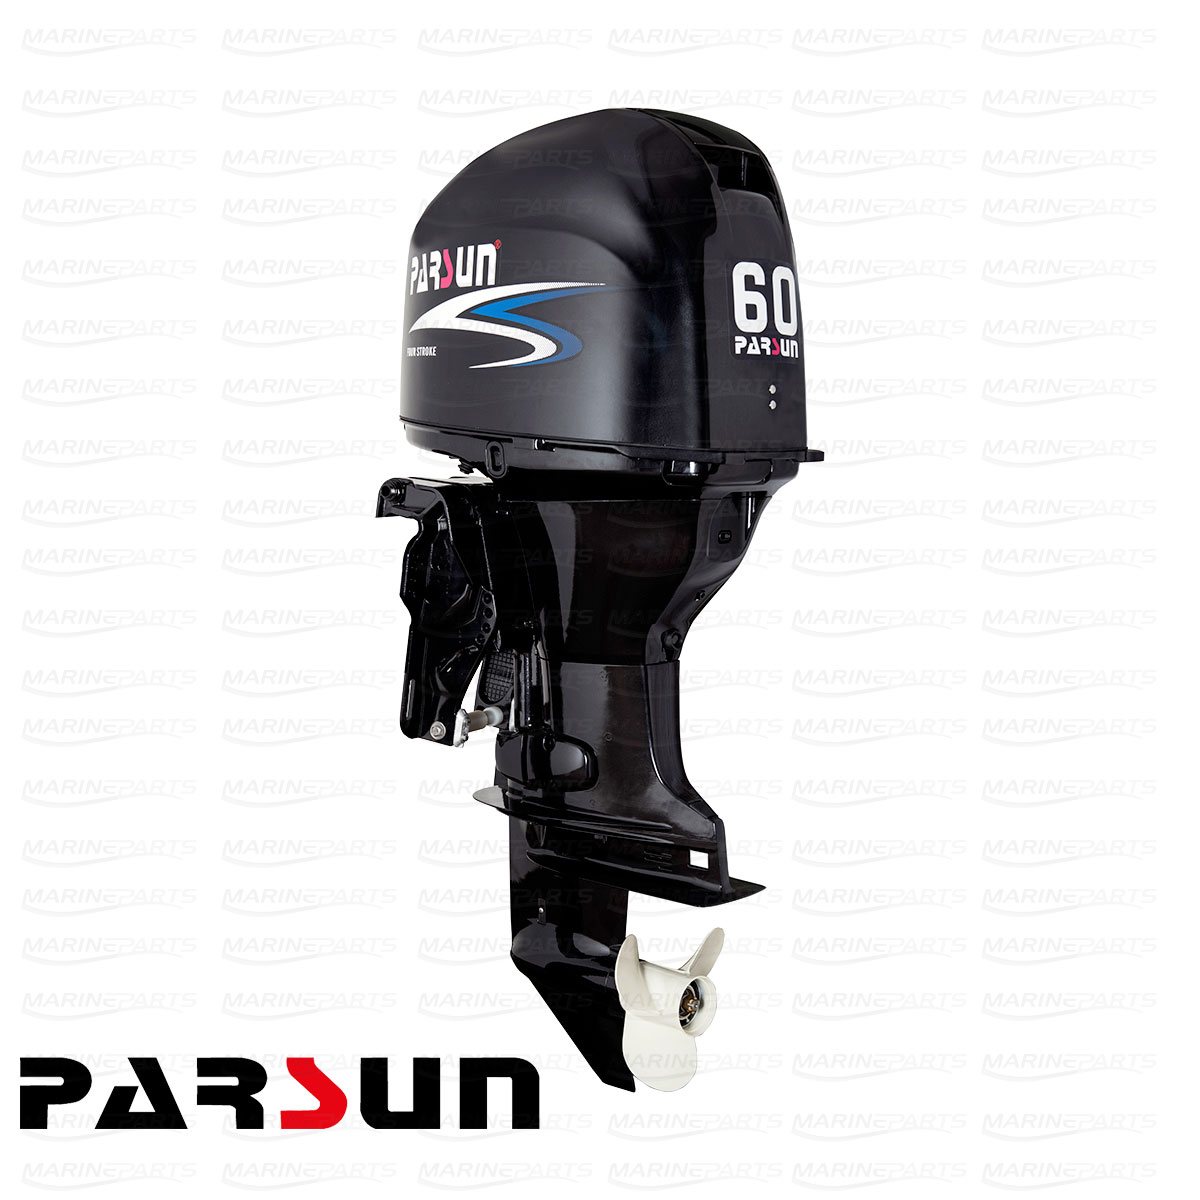 10. Parsun 30-60 hp models